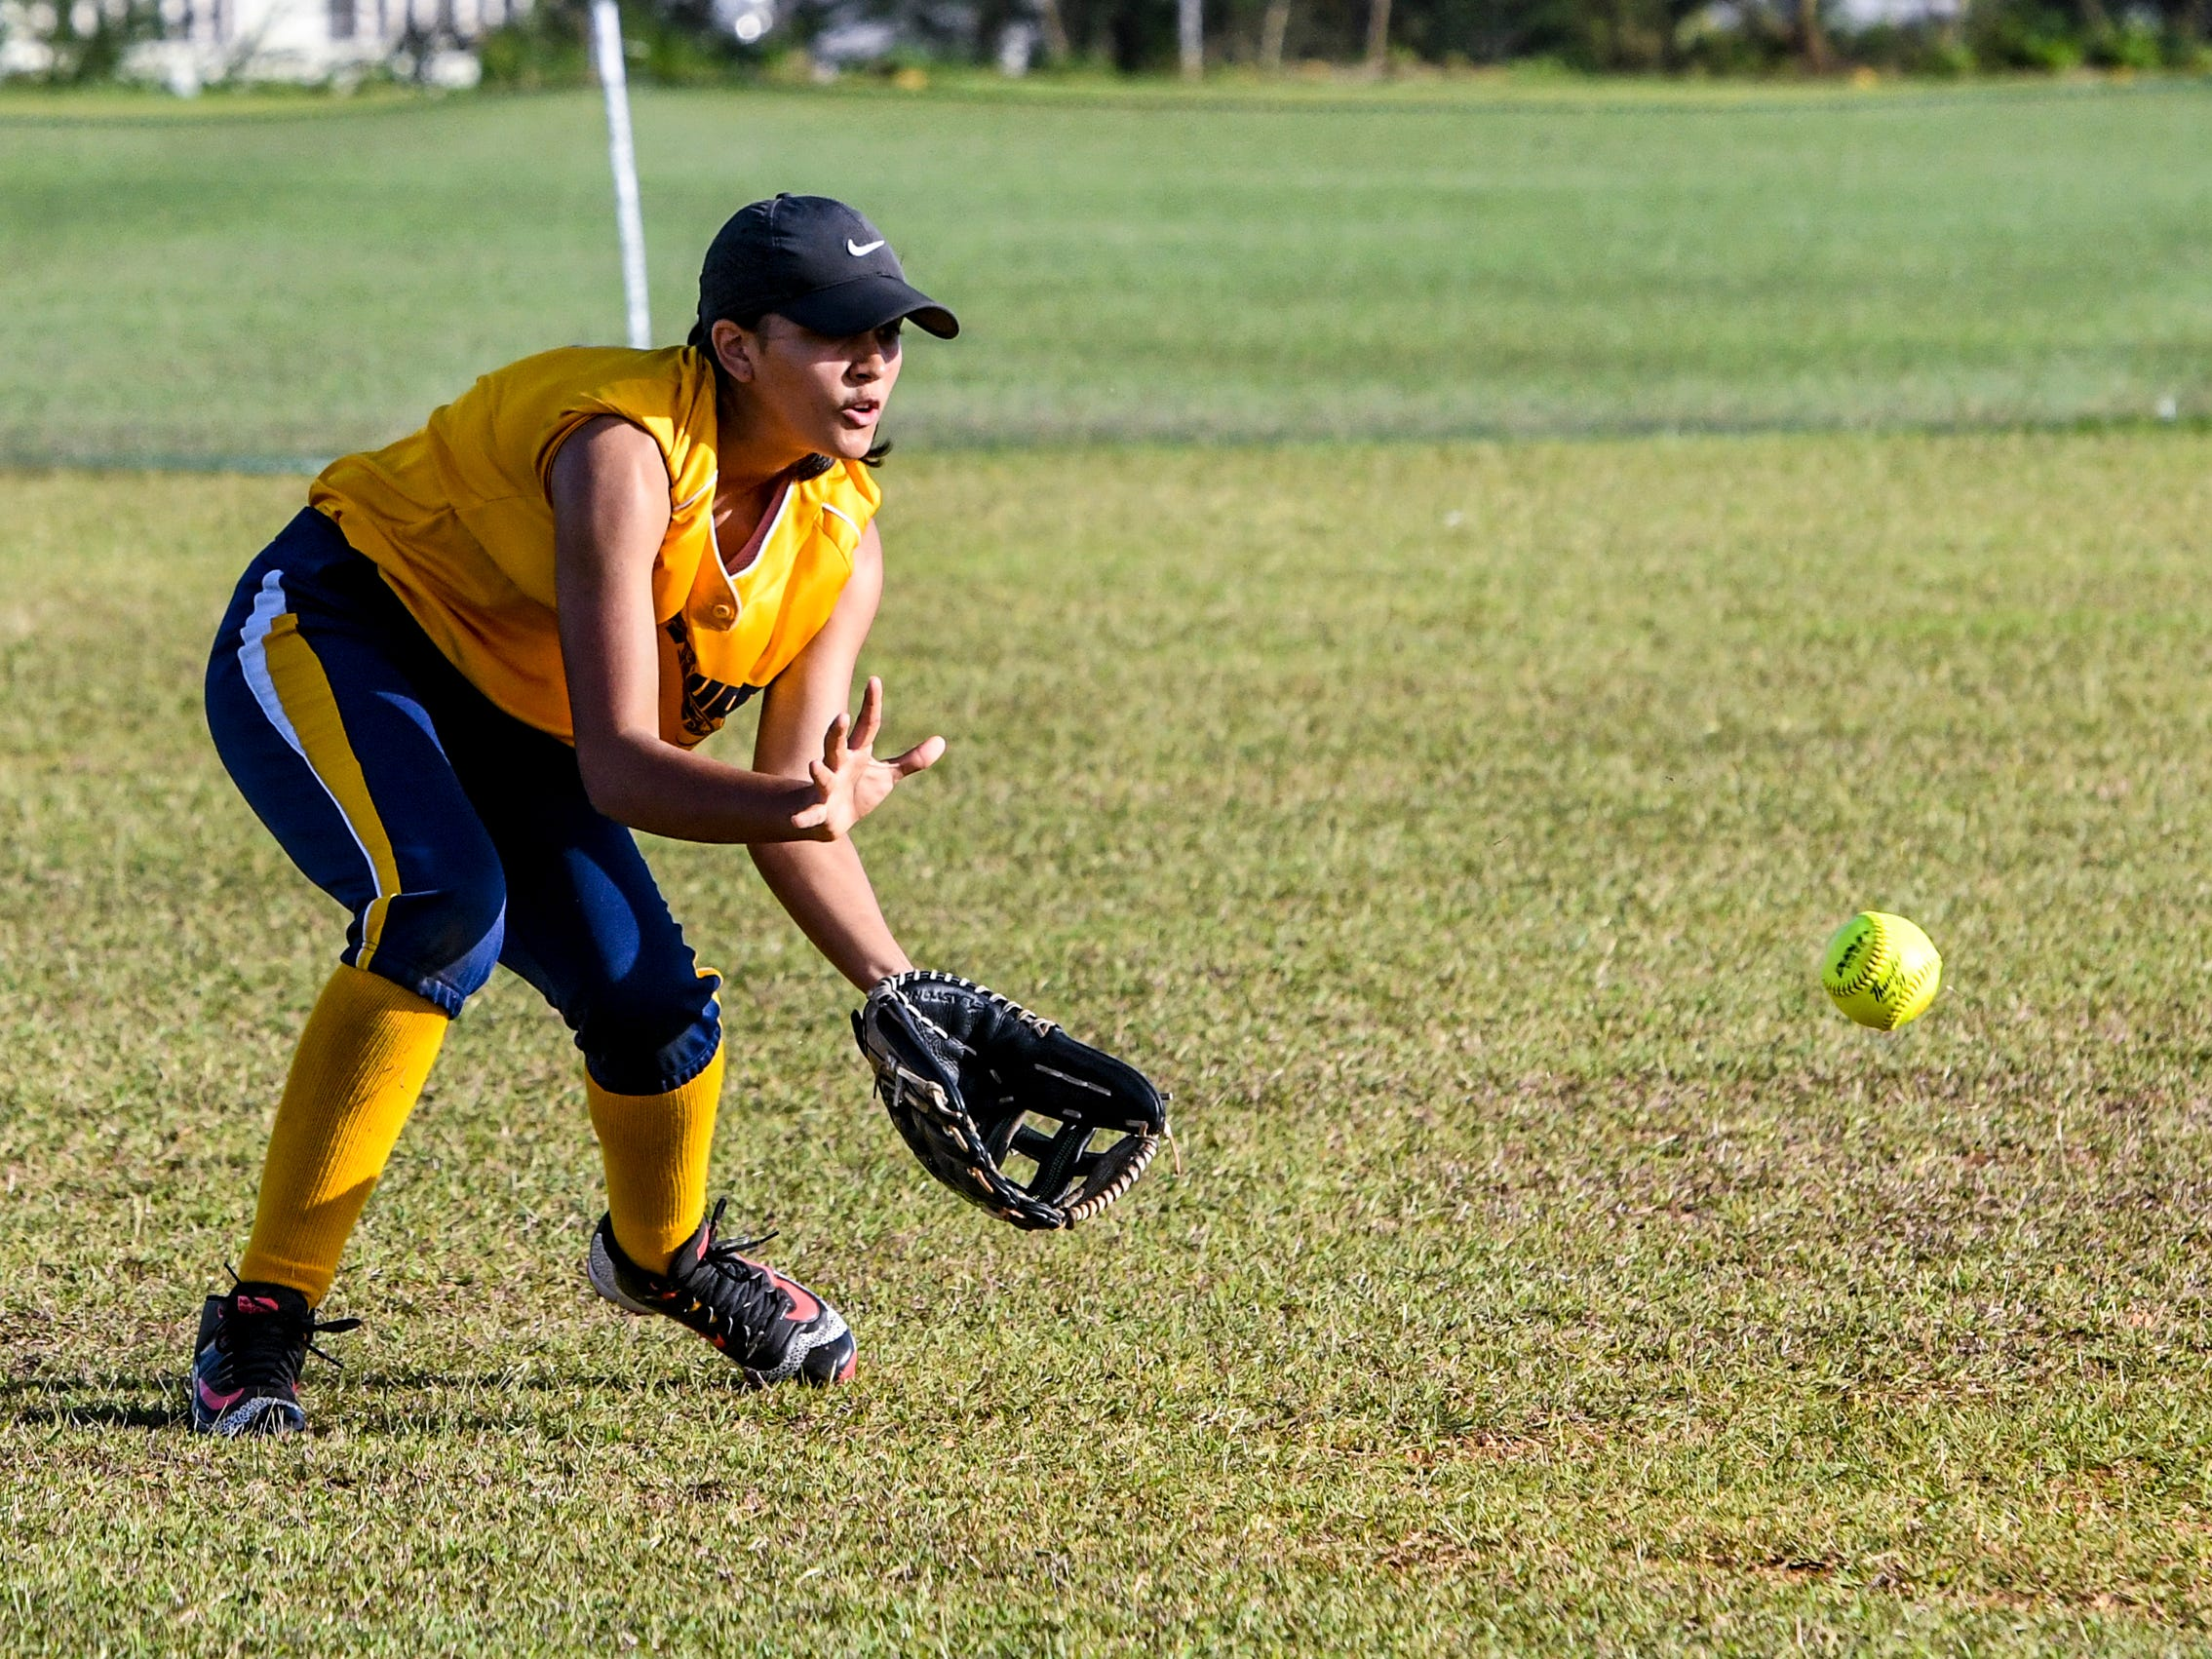 Guam High Panthers' Gabriella Rodriguez fields a ground hopper during an IIAAG girls softball matchup with the John F. Kennedy Islanders at the JFK High School campus in Tamuning on Thursday, Feb. 7, 2019.